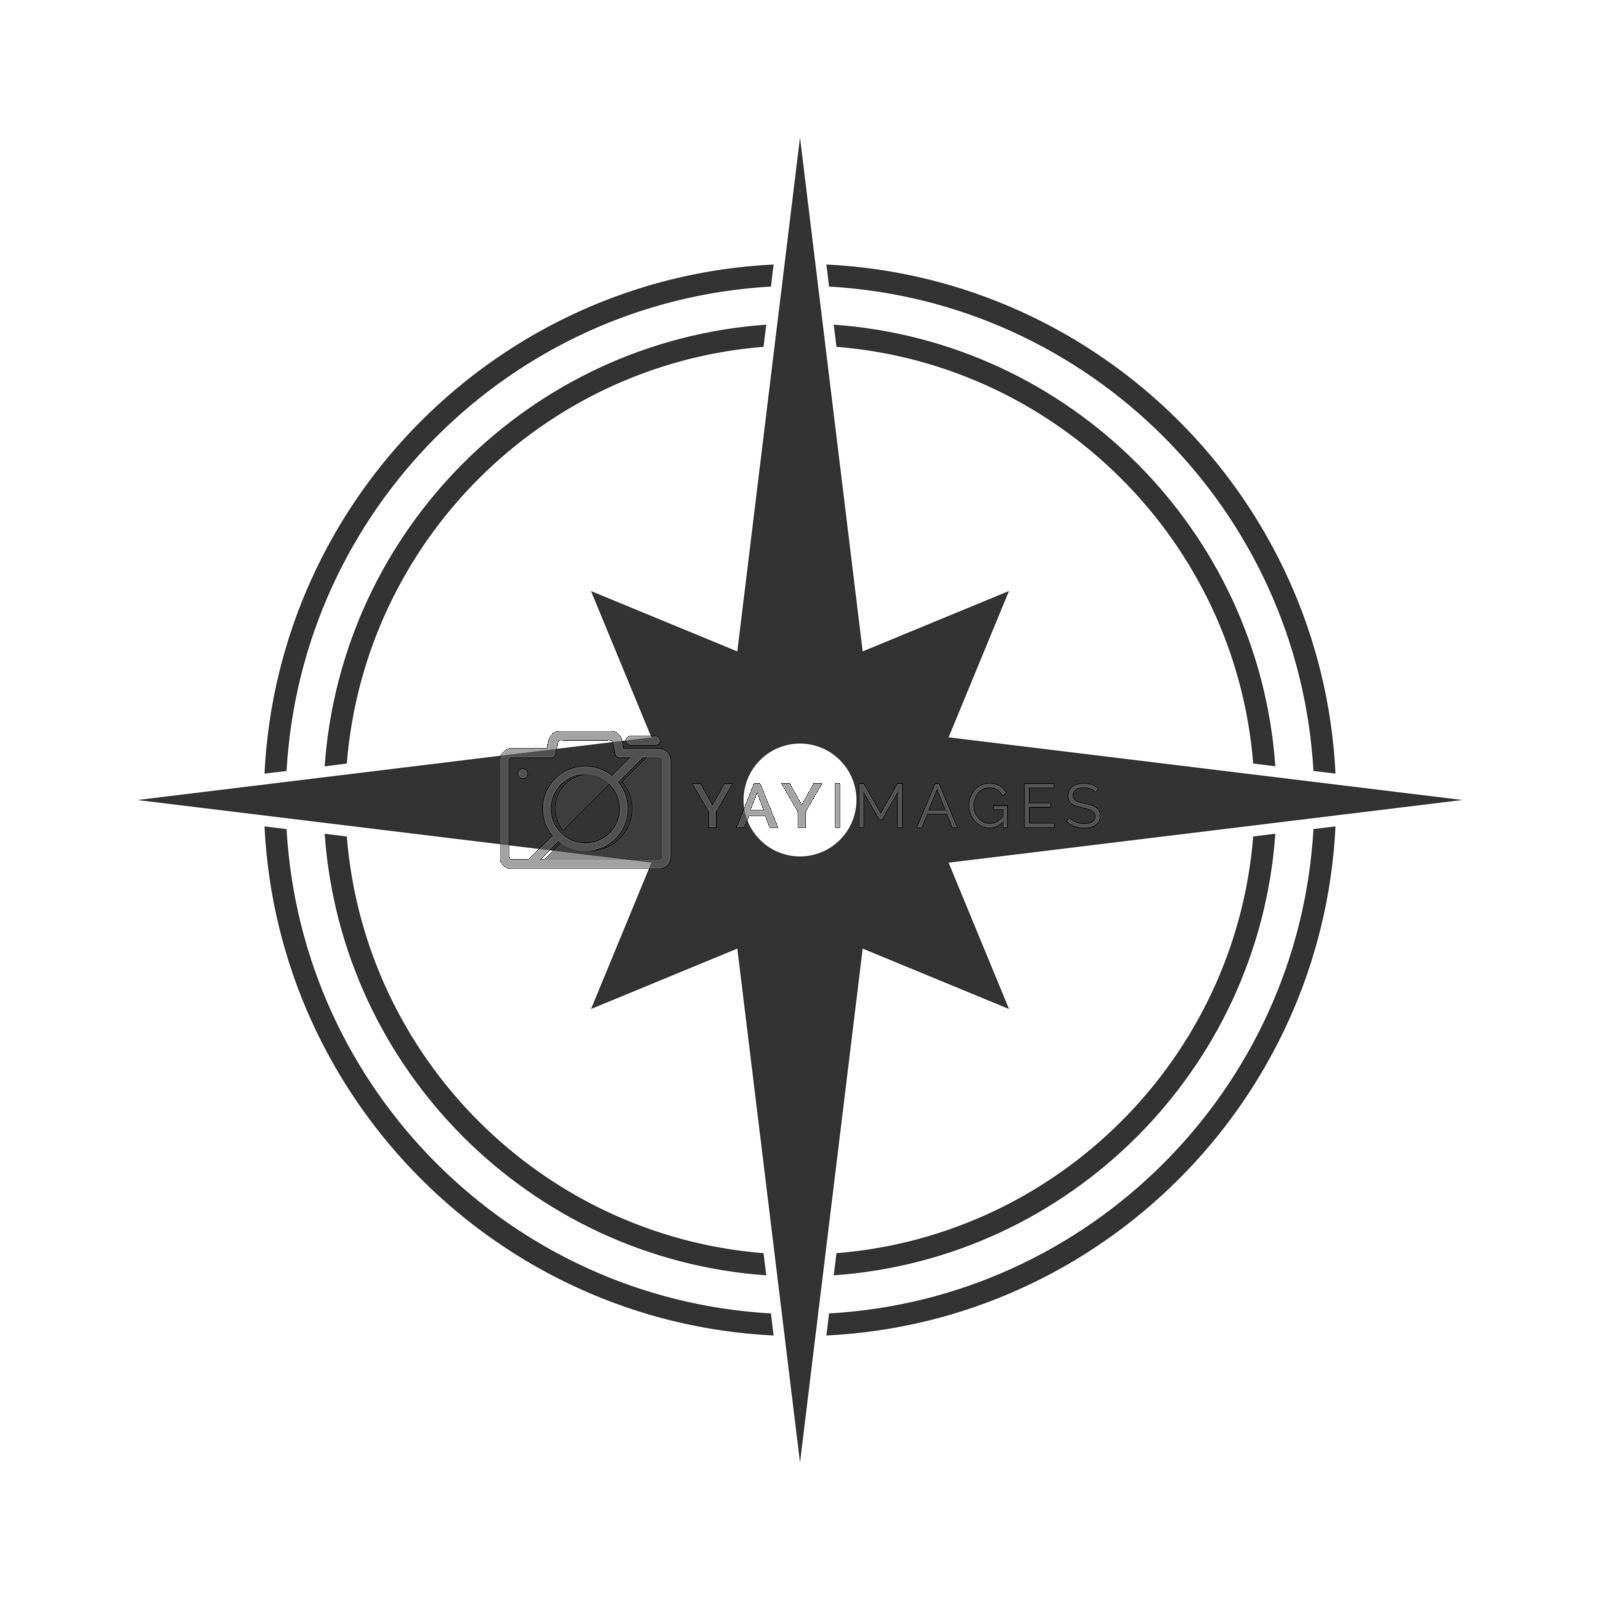 Simple flat icon of a compass, cardinal directions and orienteering